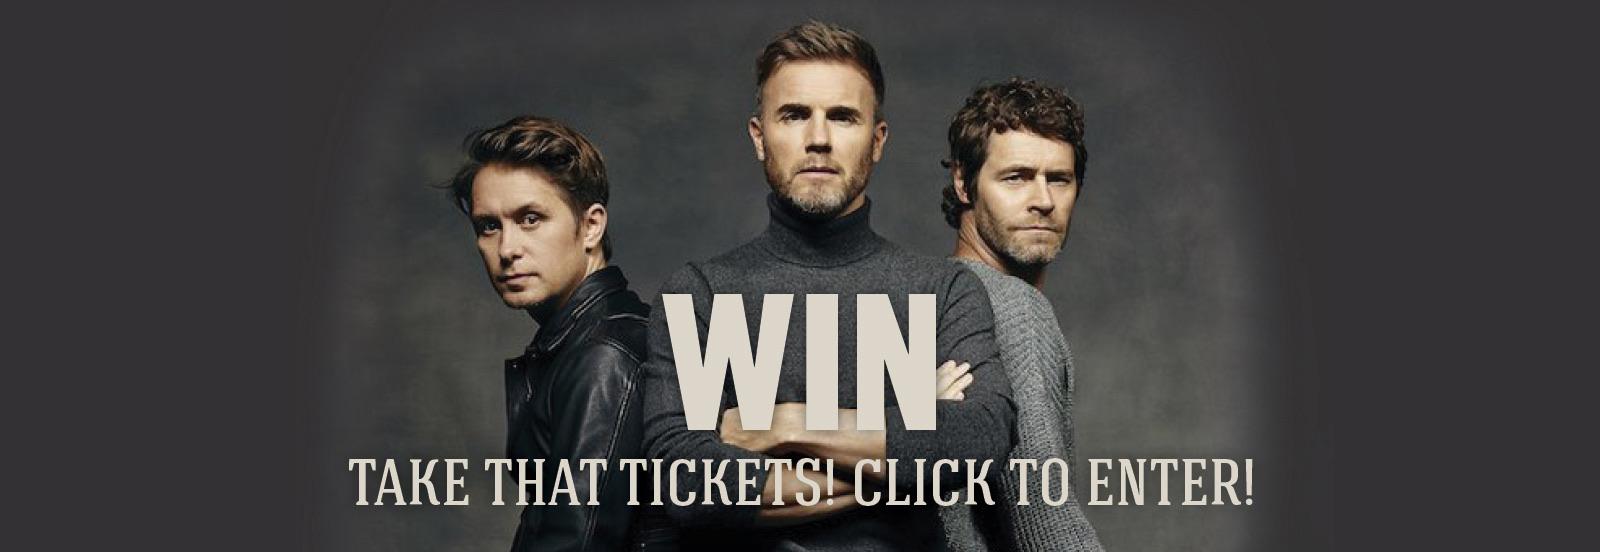 WIN an all expenses paid trip to see Take That in June!